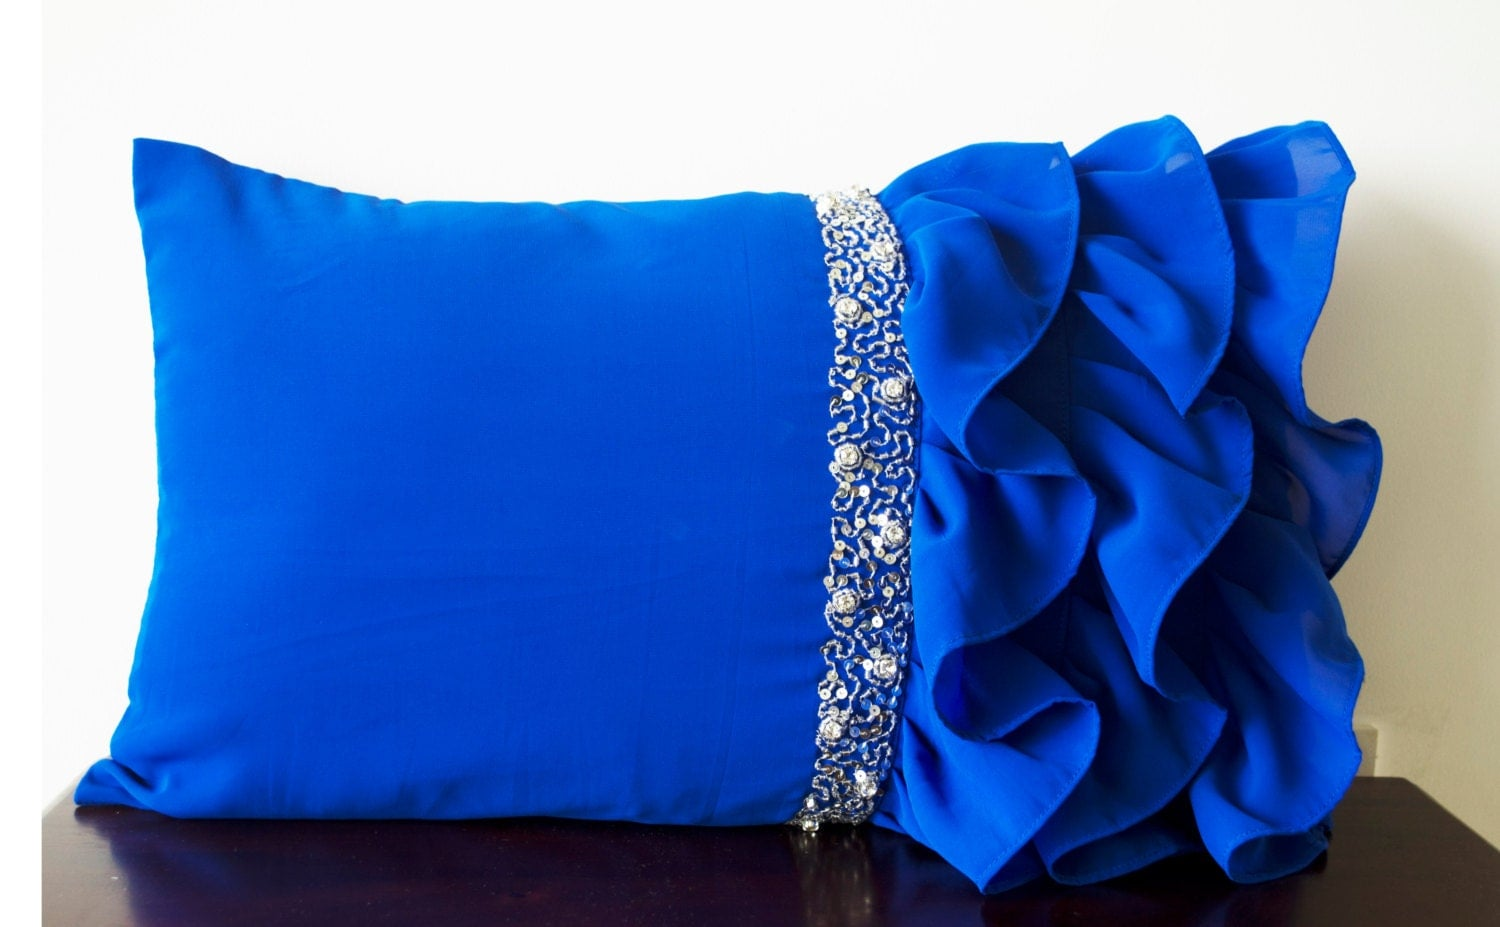 Royal Blue And White Throw Pillows : Royal Blue ruffled throw pillows Ruffle pillows 12x20 Blue